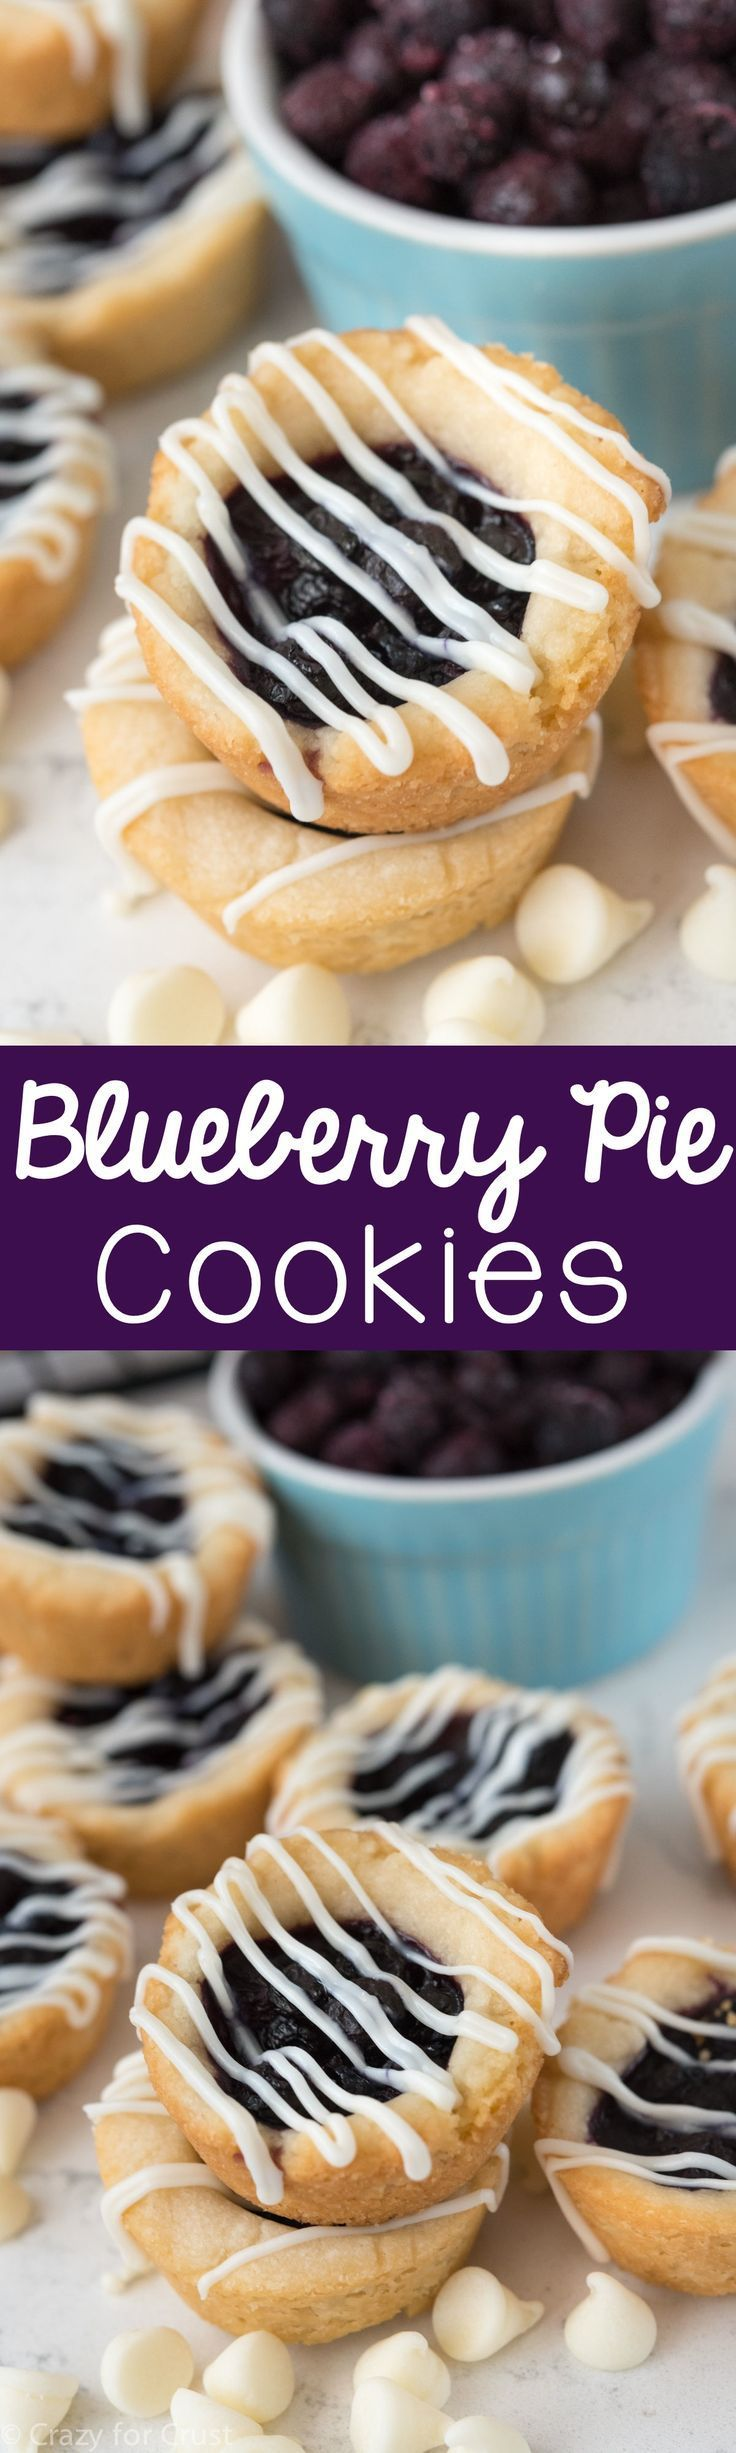 Easy Blueberry Pie Cookies - a shortbread cookie filled with blueberry pie! This recipe is foolproof and perfect for the holidays.